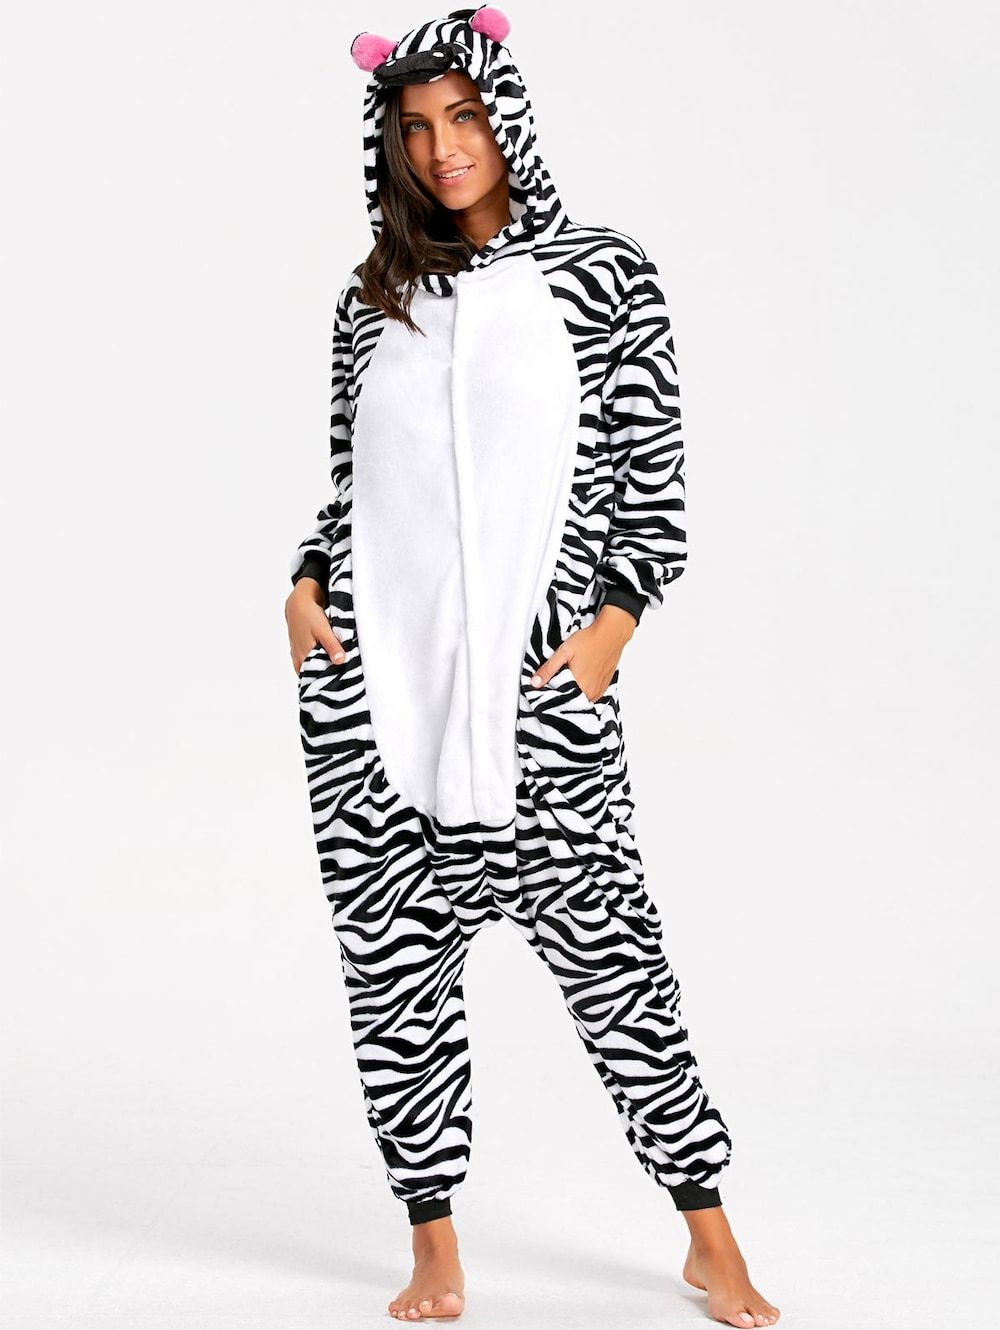 15+ Animal onesies for adults ideas in 2021